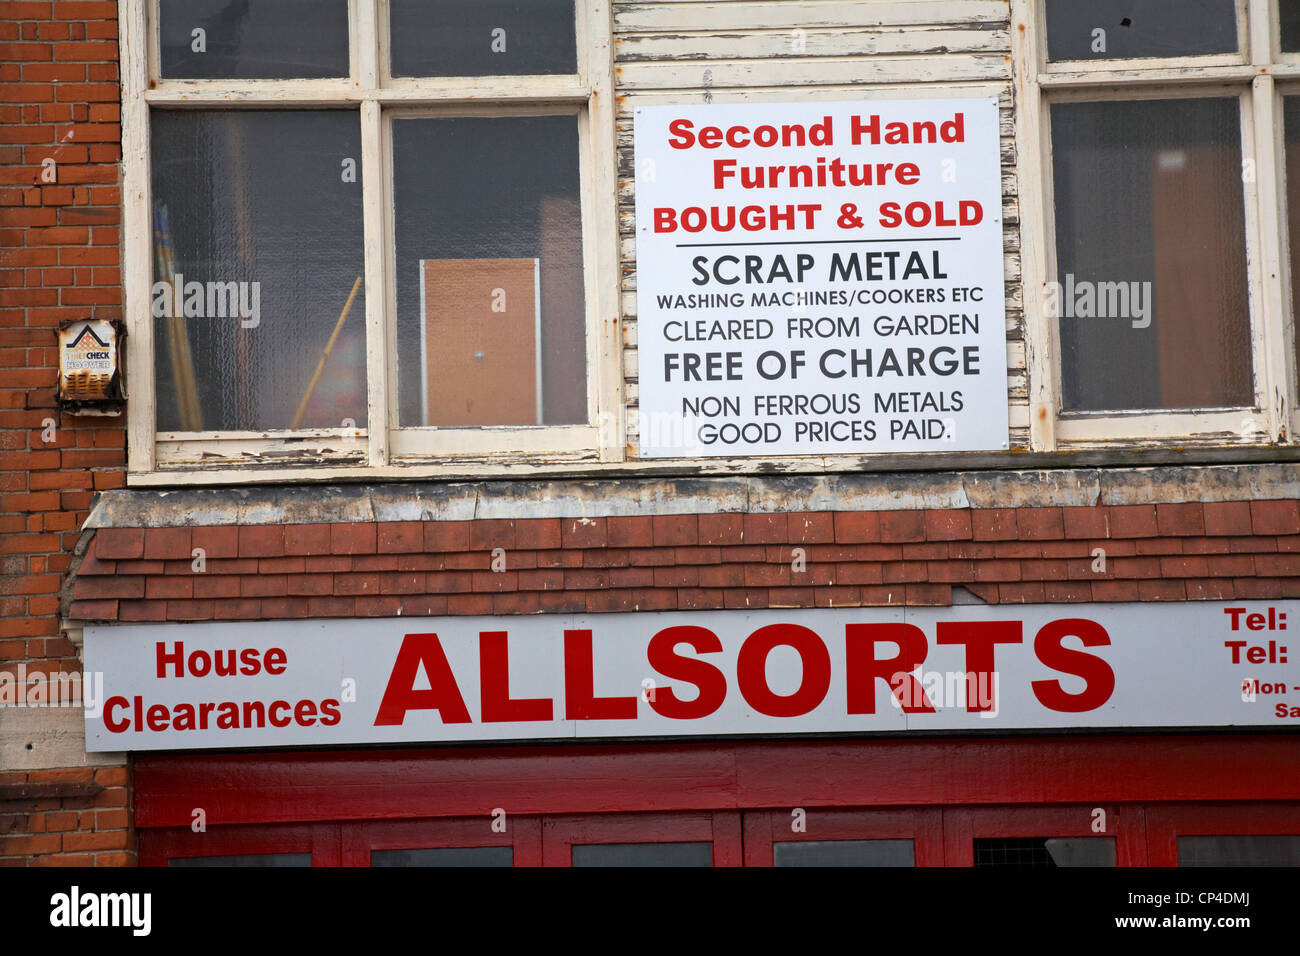 Allsorts house clearances second hand furniture bought - Buy second hand furniture ...